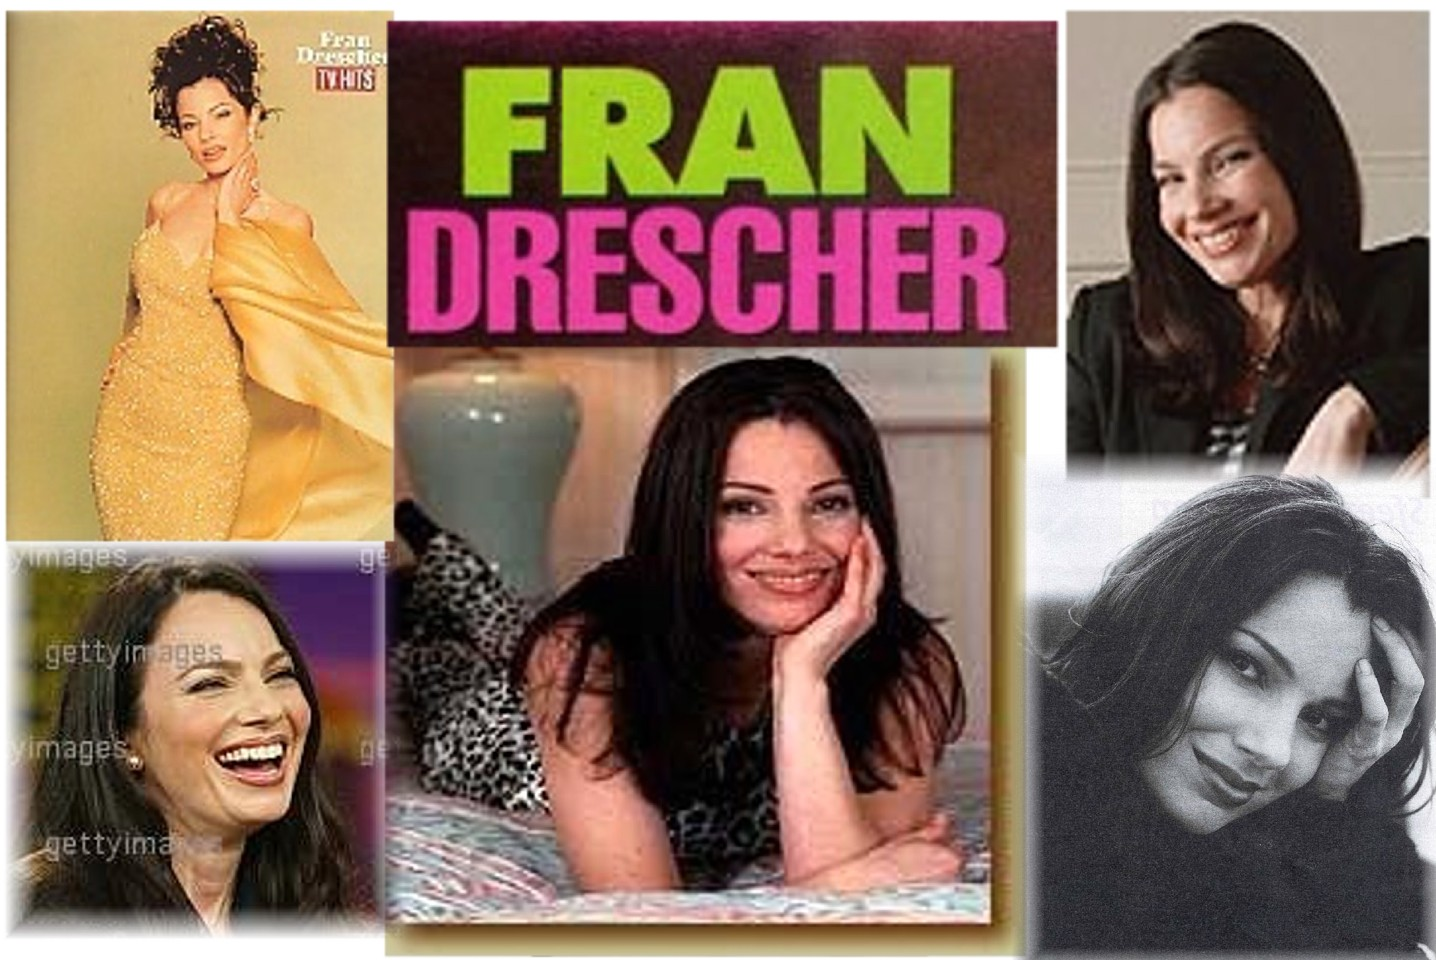 dresher chat sites Our chat rooms instantly connect you cam to cam with strangers use our chat rooms for video chatting with strangers based on interests.